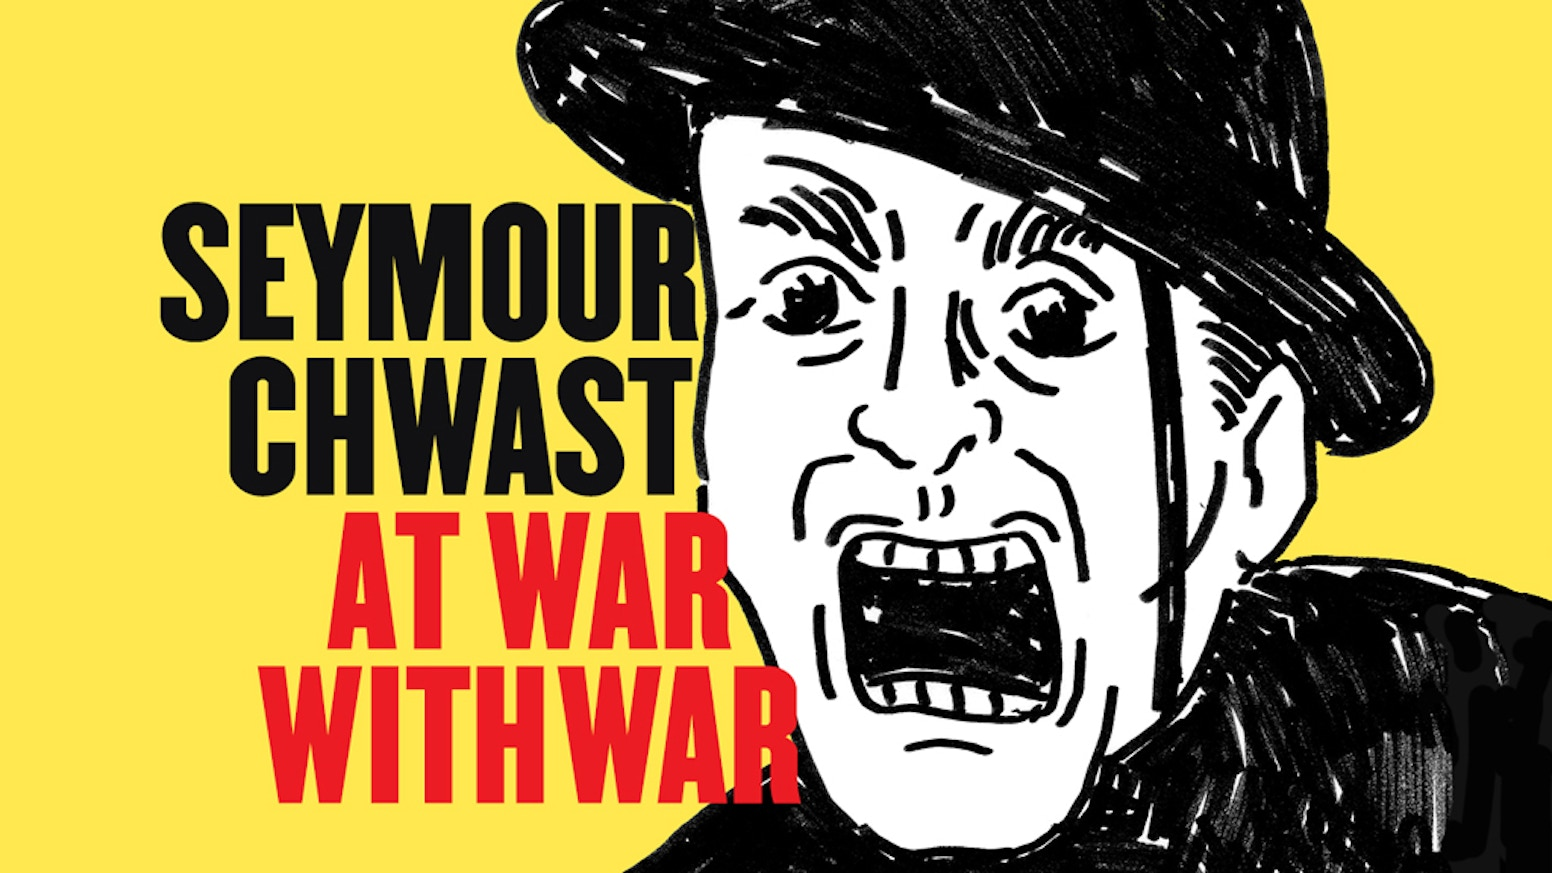 Design icon Seymour Chwast has used his art to battle war since 1957. His new antiwar book features 70 pages of original illustrations.